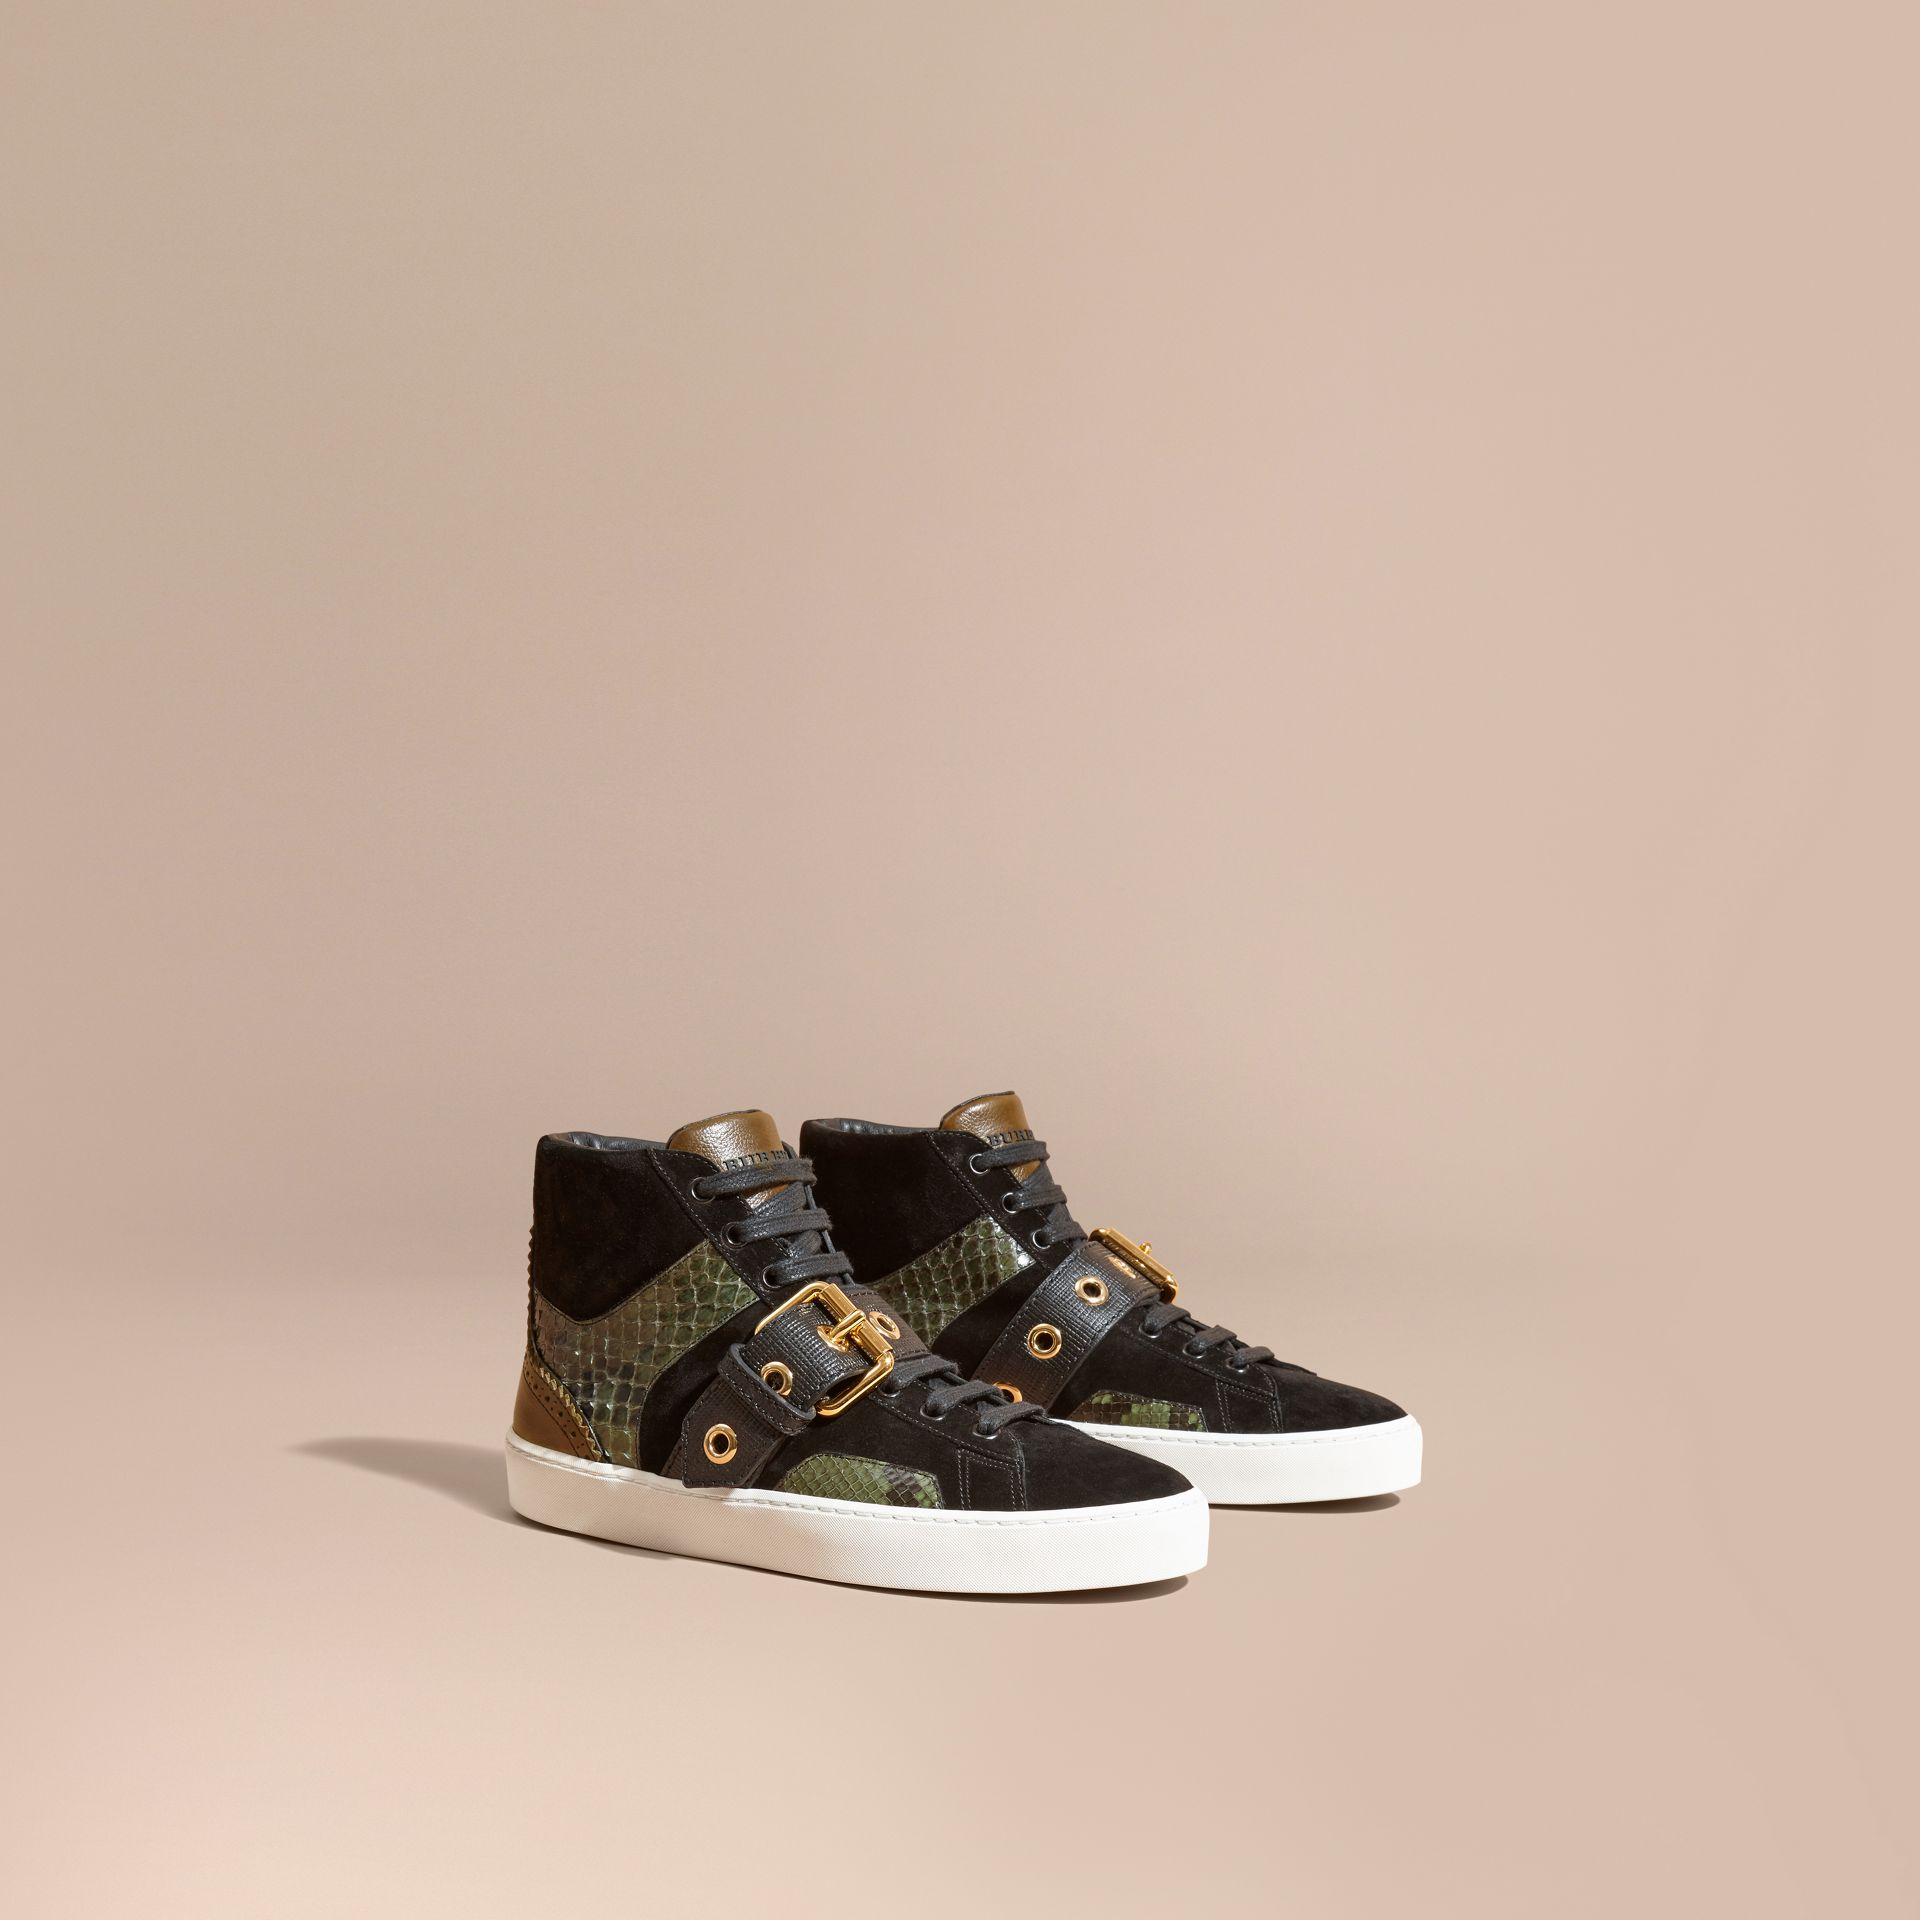 Buckle Detail Leather and Snakeskin High-top Trainers Military Olive - gallery image 1